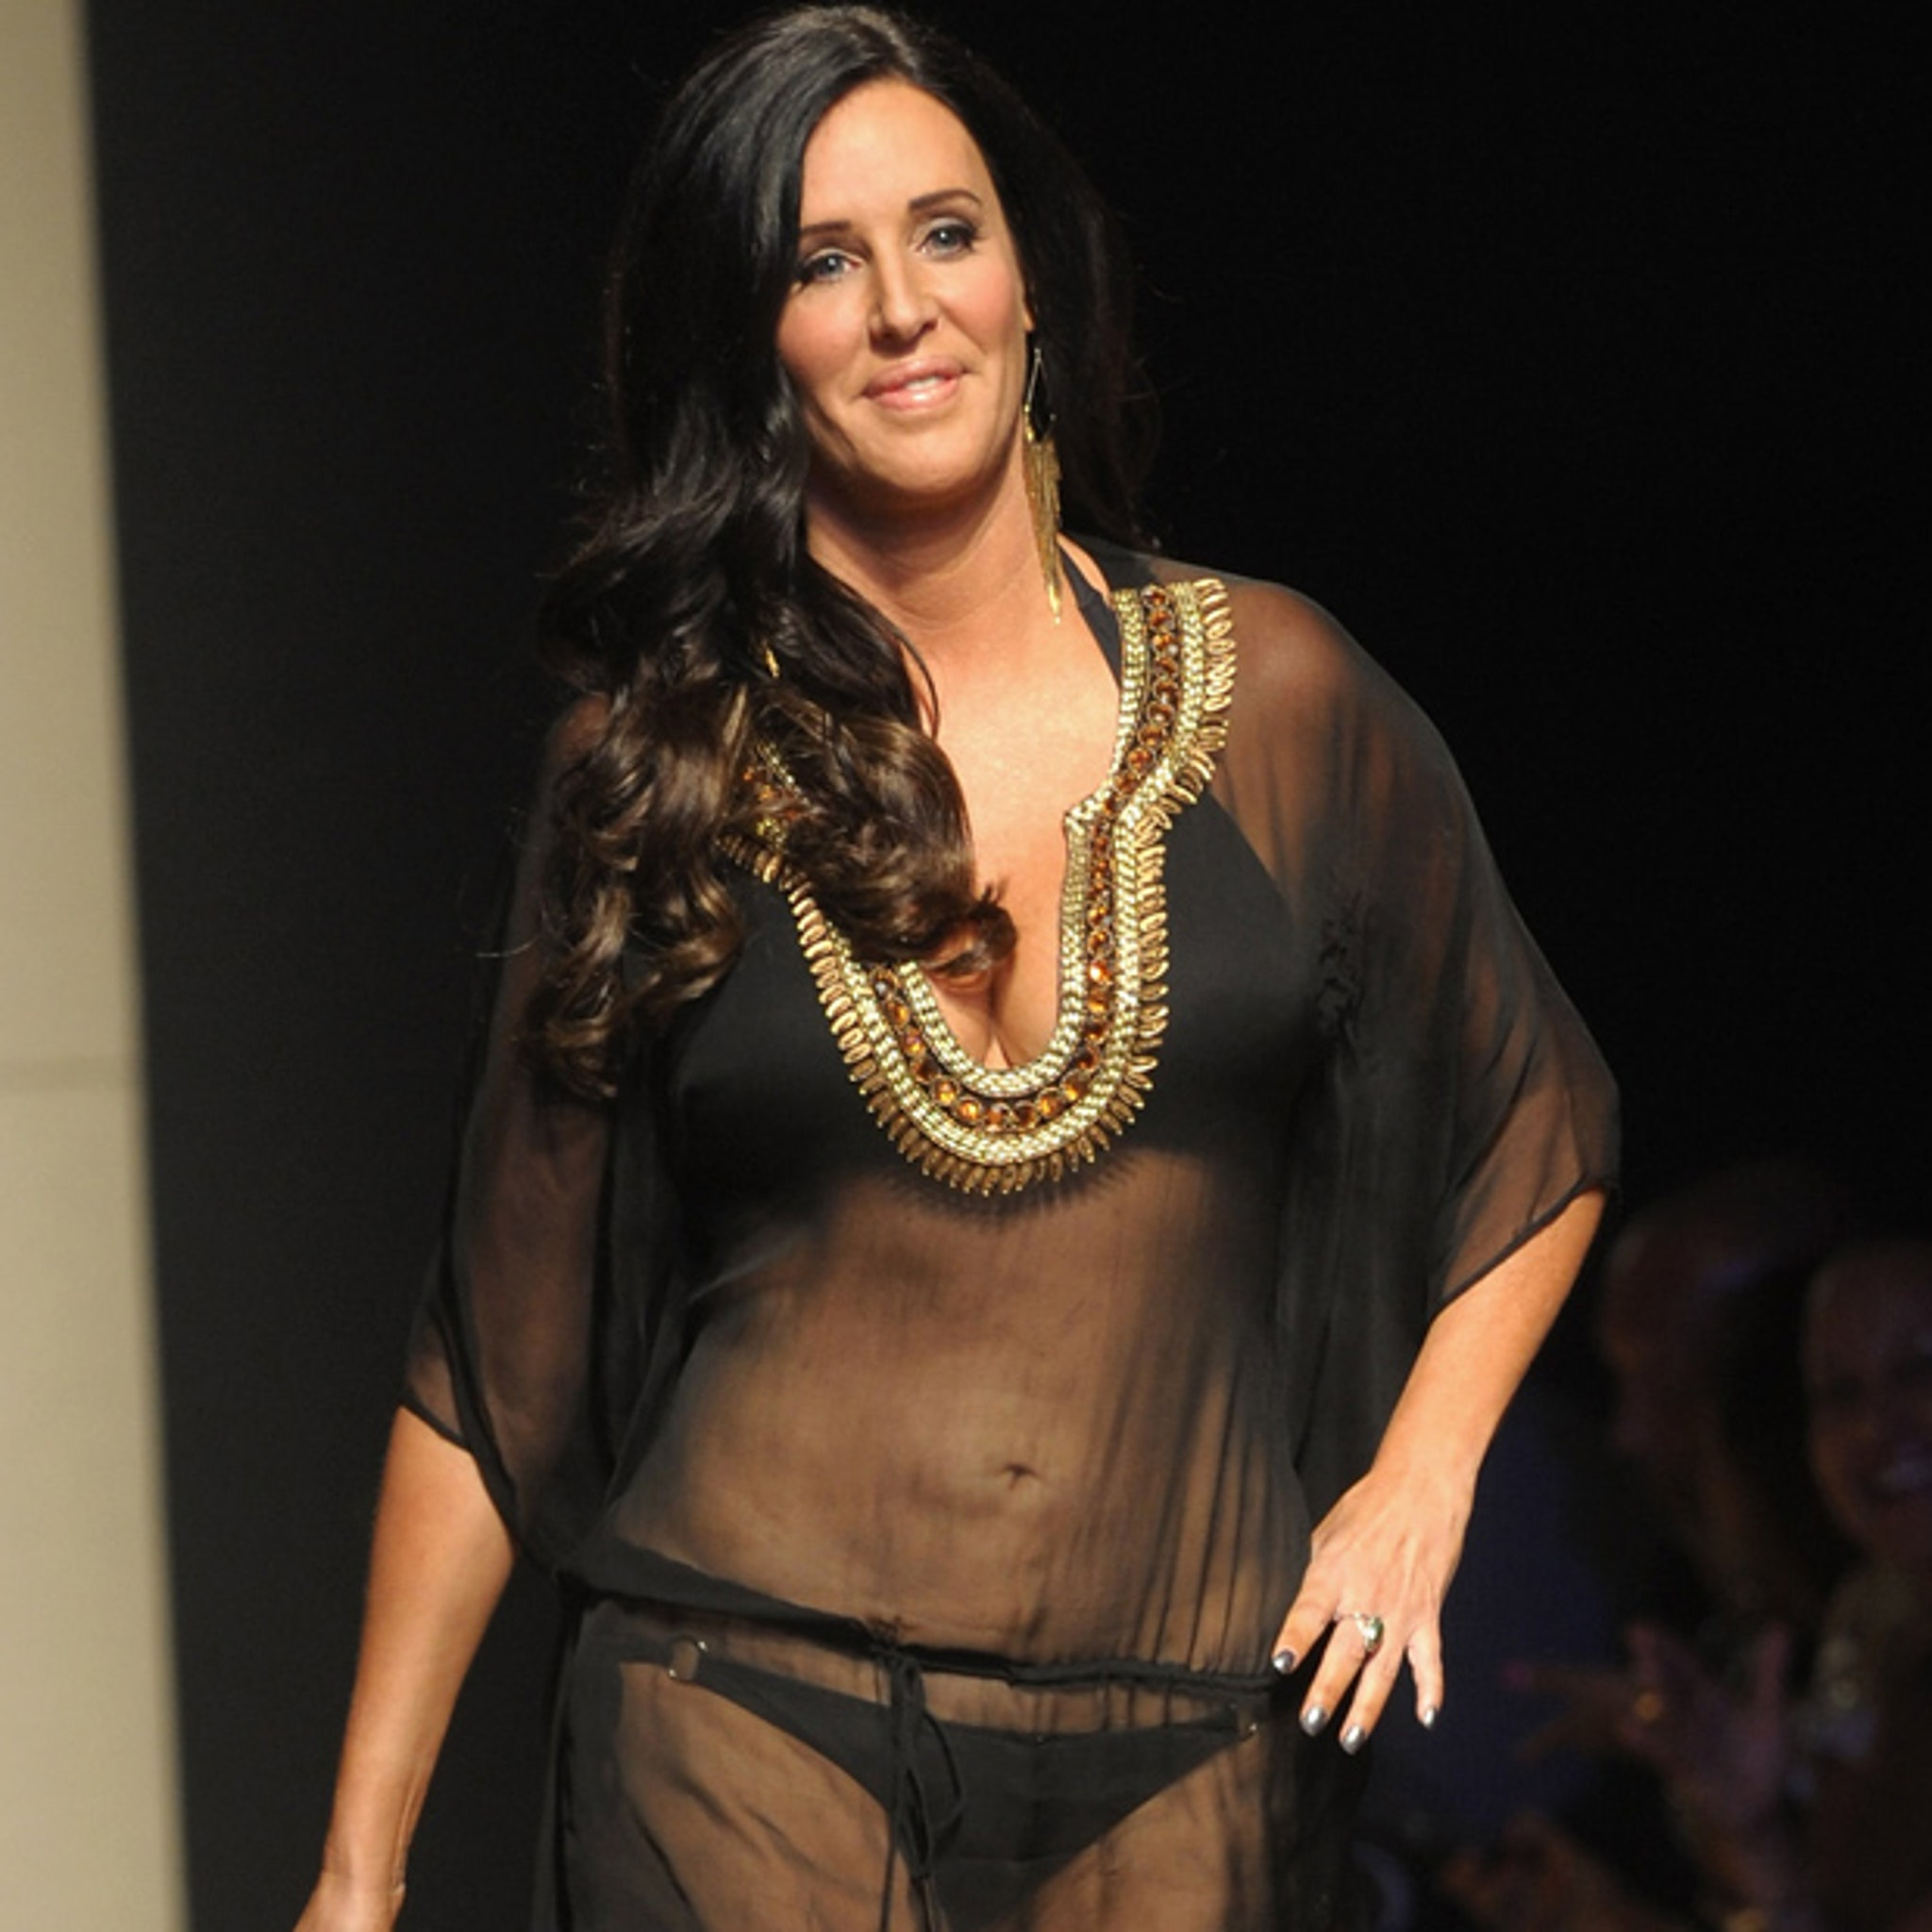 Patti stanger is who The Millionaire